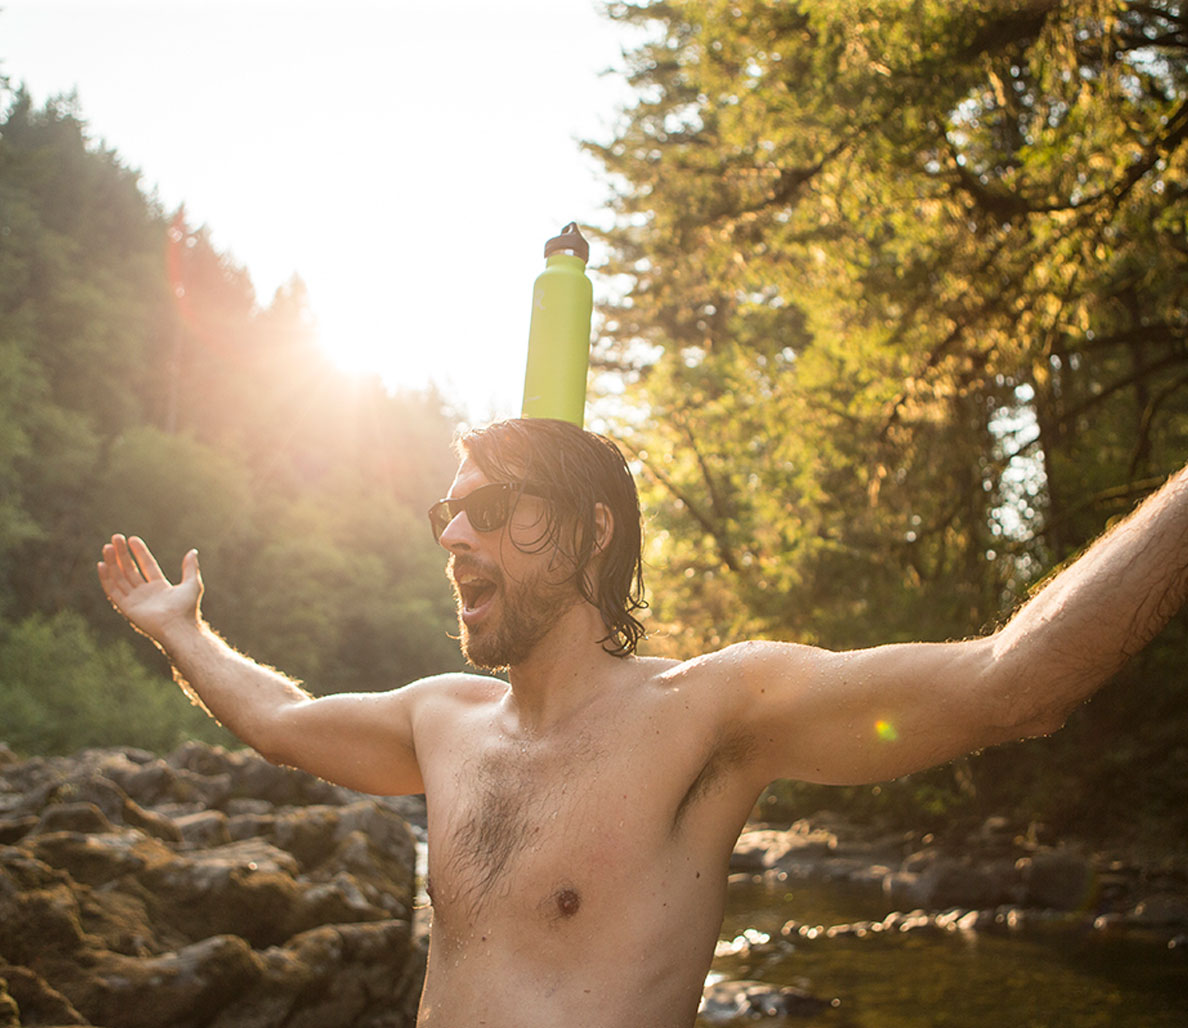 The 10 Best Water Bottles for Fit, Active Guys